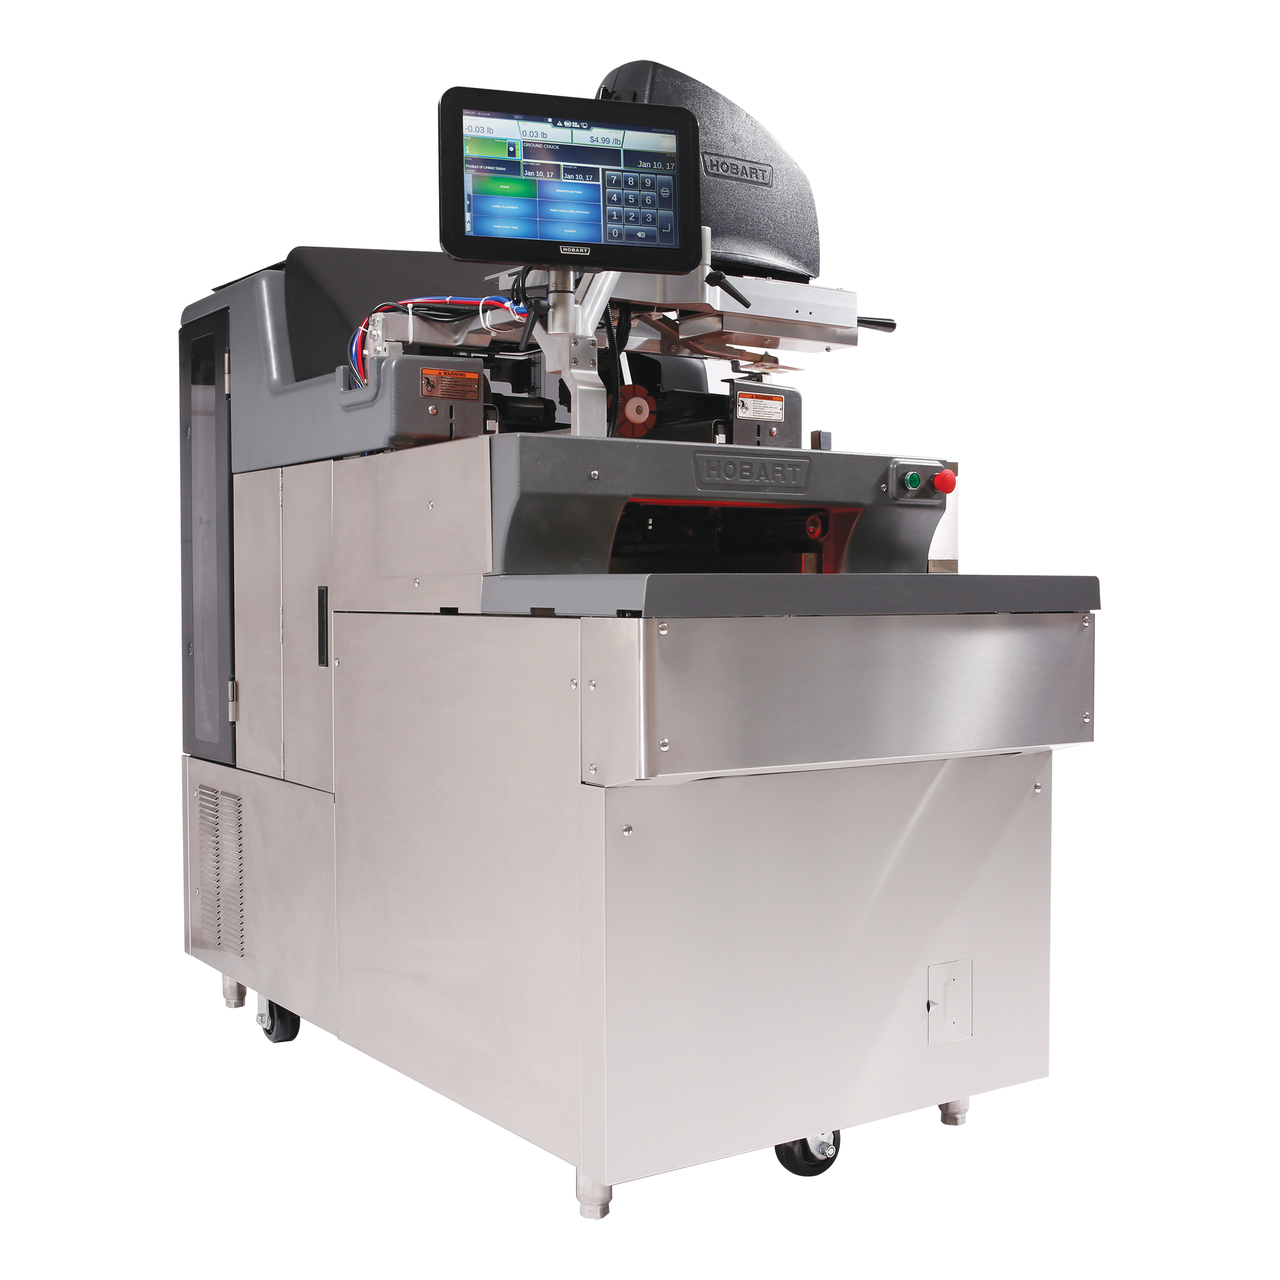 Automatic Wrapping Systems | Auto Wrap Equipment | Hobart